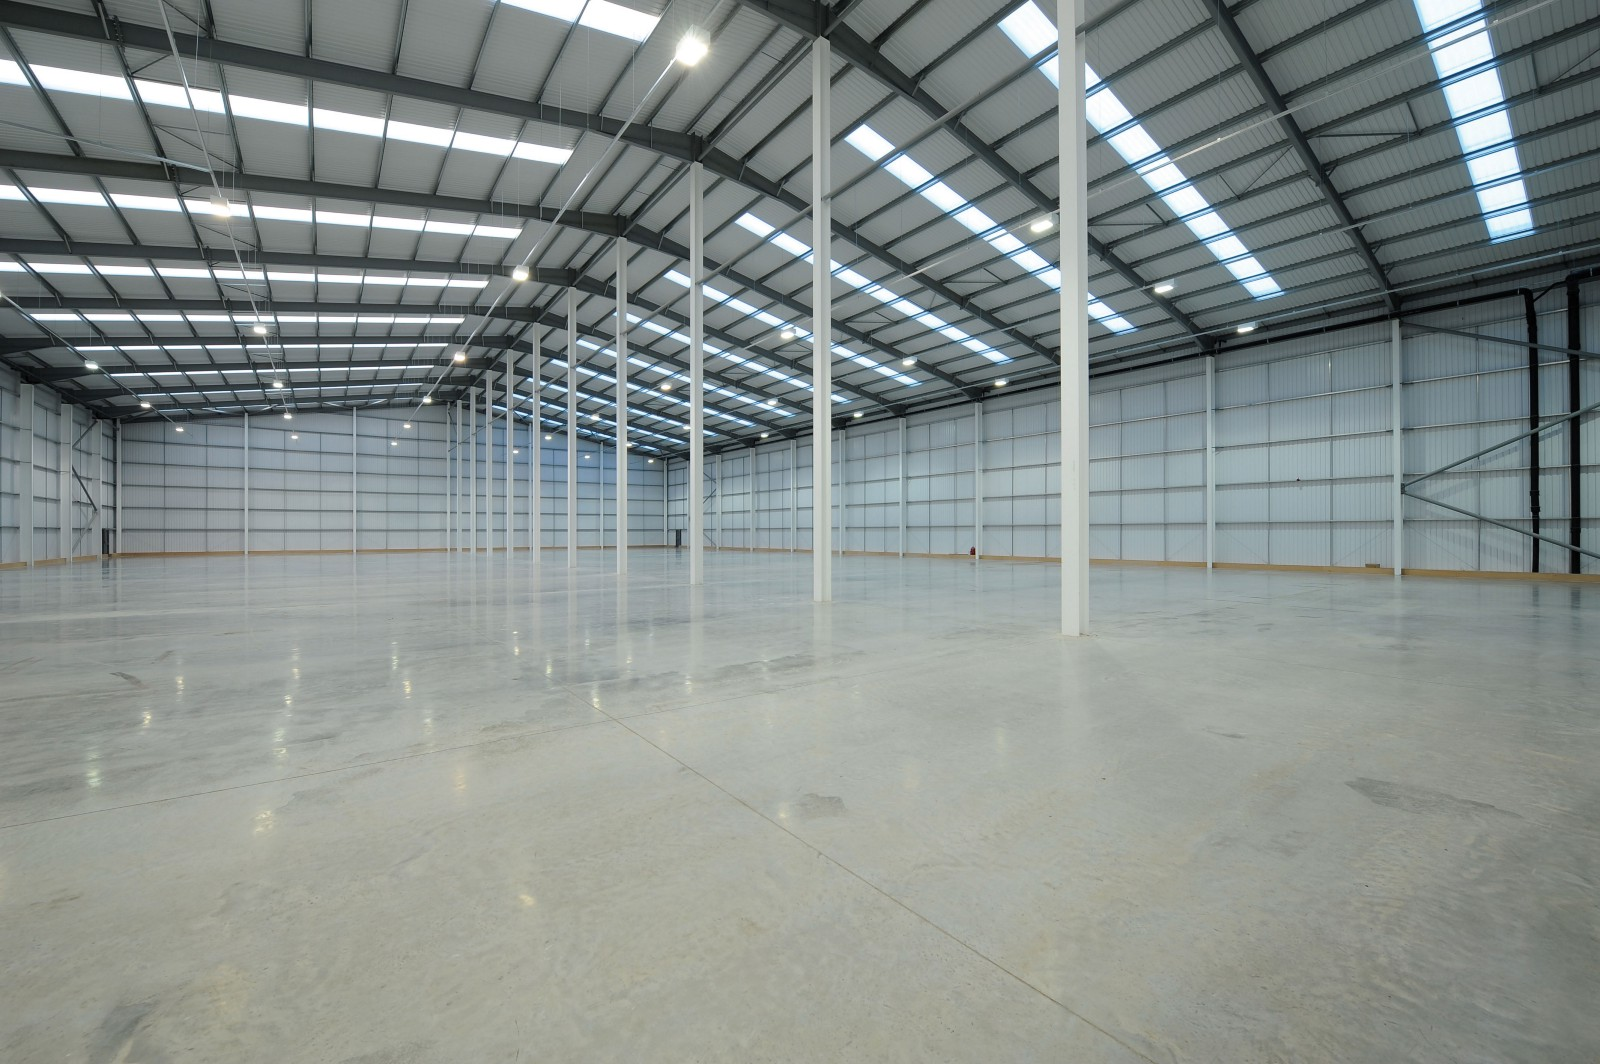 WAREHOUSE / GODOWN FOR RENT | LEASE IN CHANGODAR AHMEDABAD – 7043395463